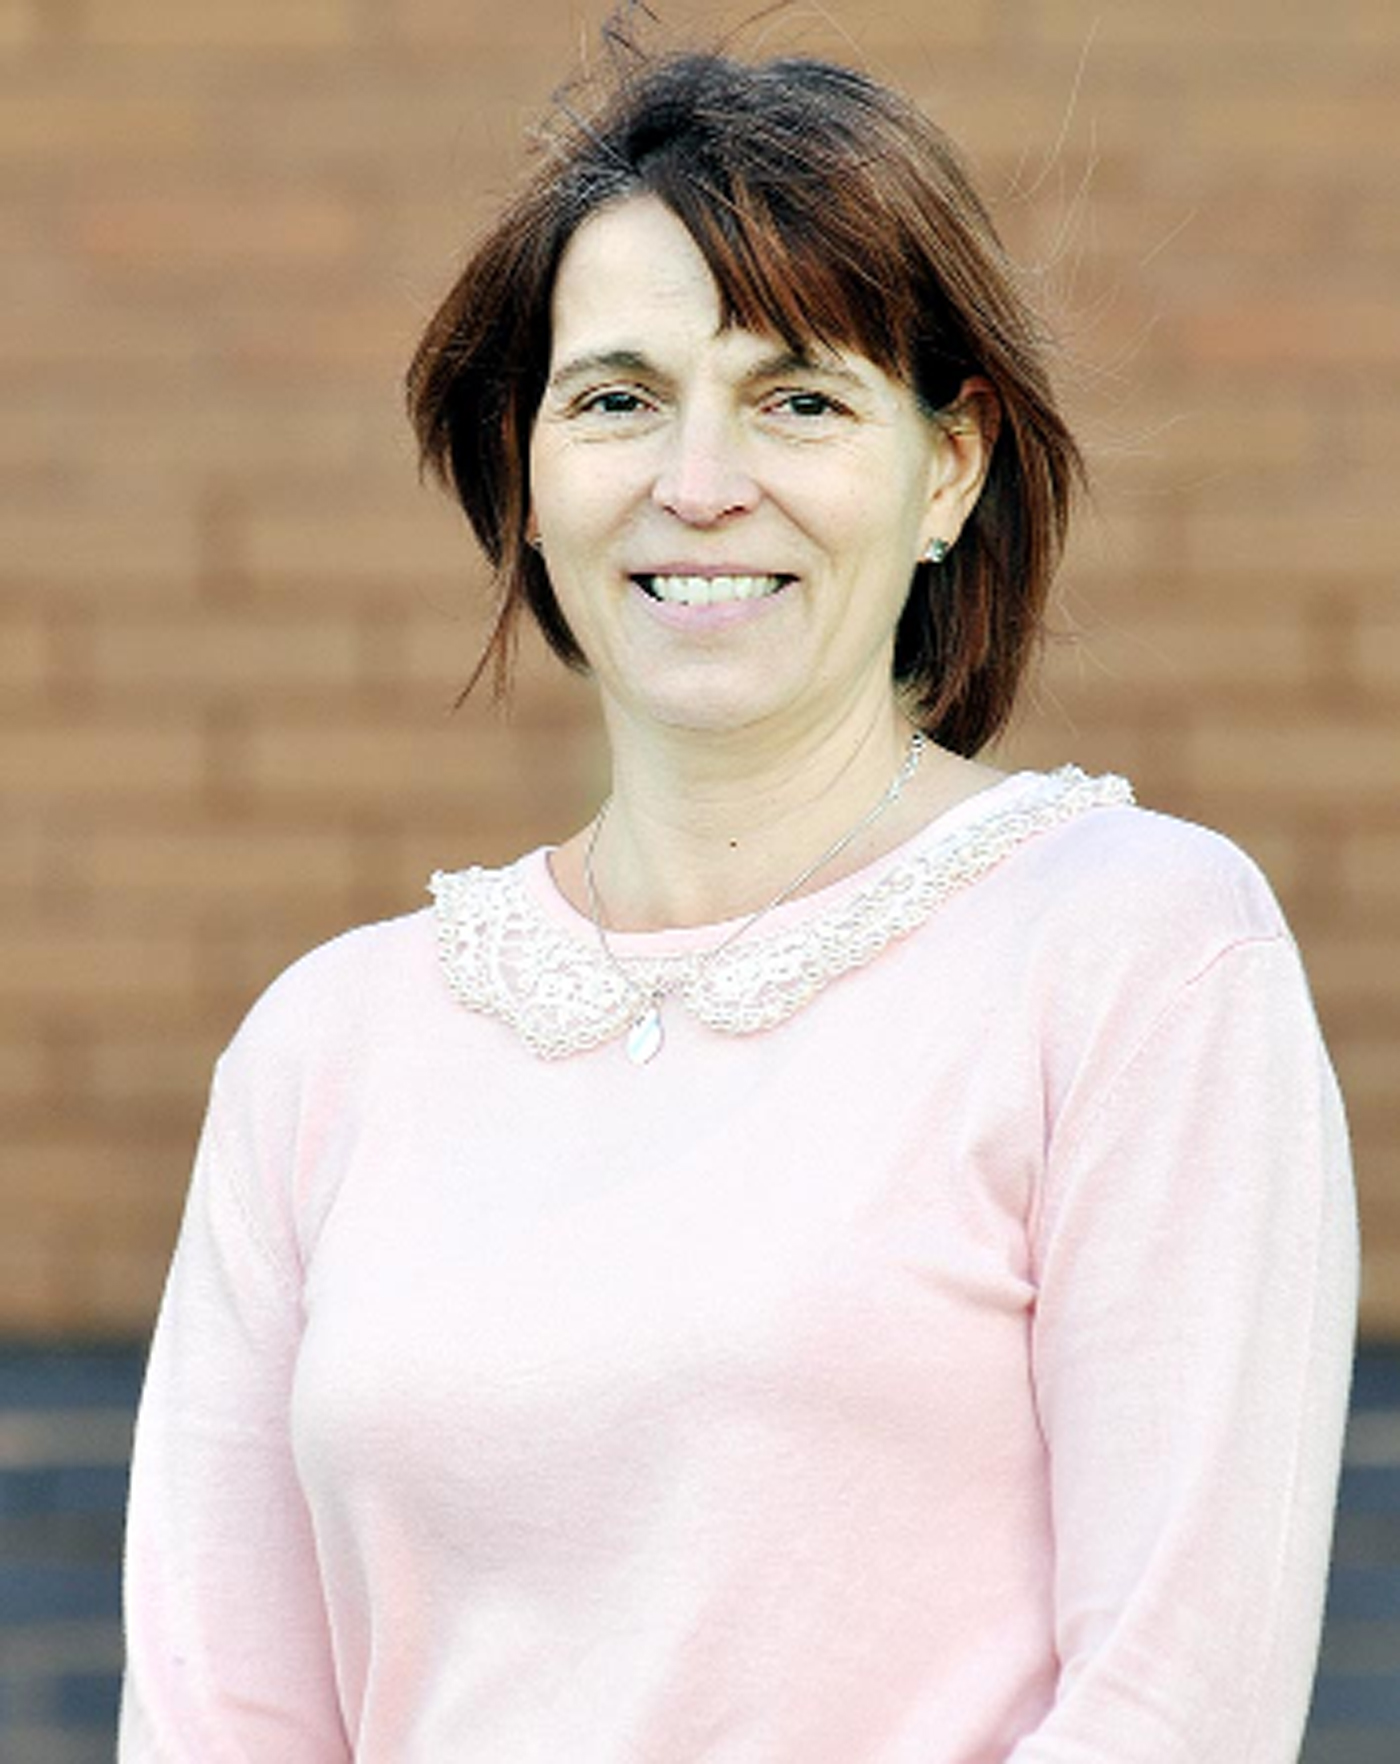 Vicky Weddle is the new head of St Peter's Primary Schoo